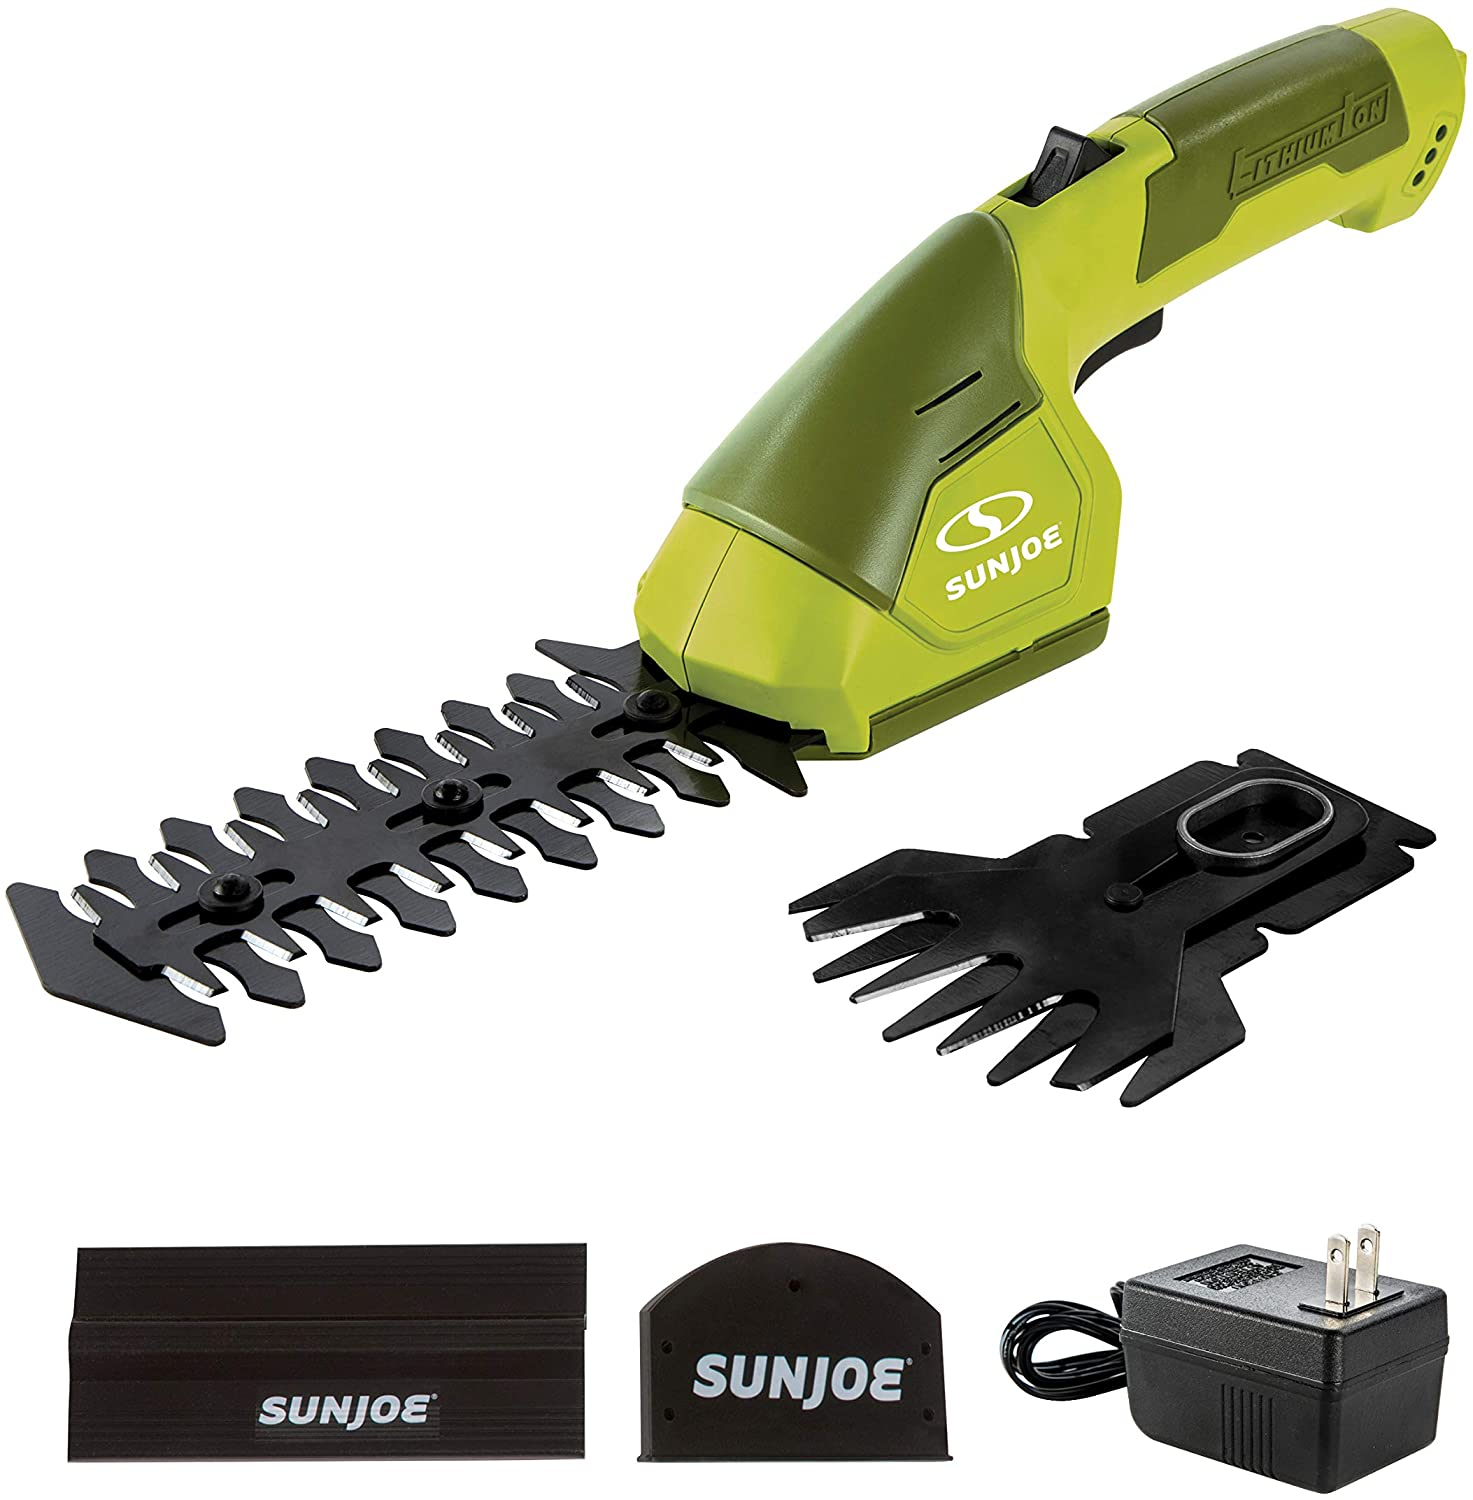 Sun Joe 7.2-Volt Cordless Hedge Trimmer